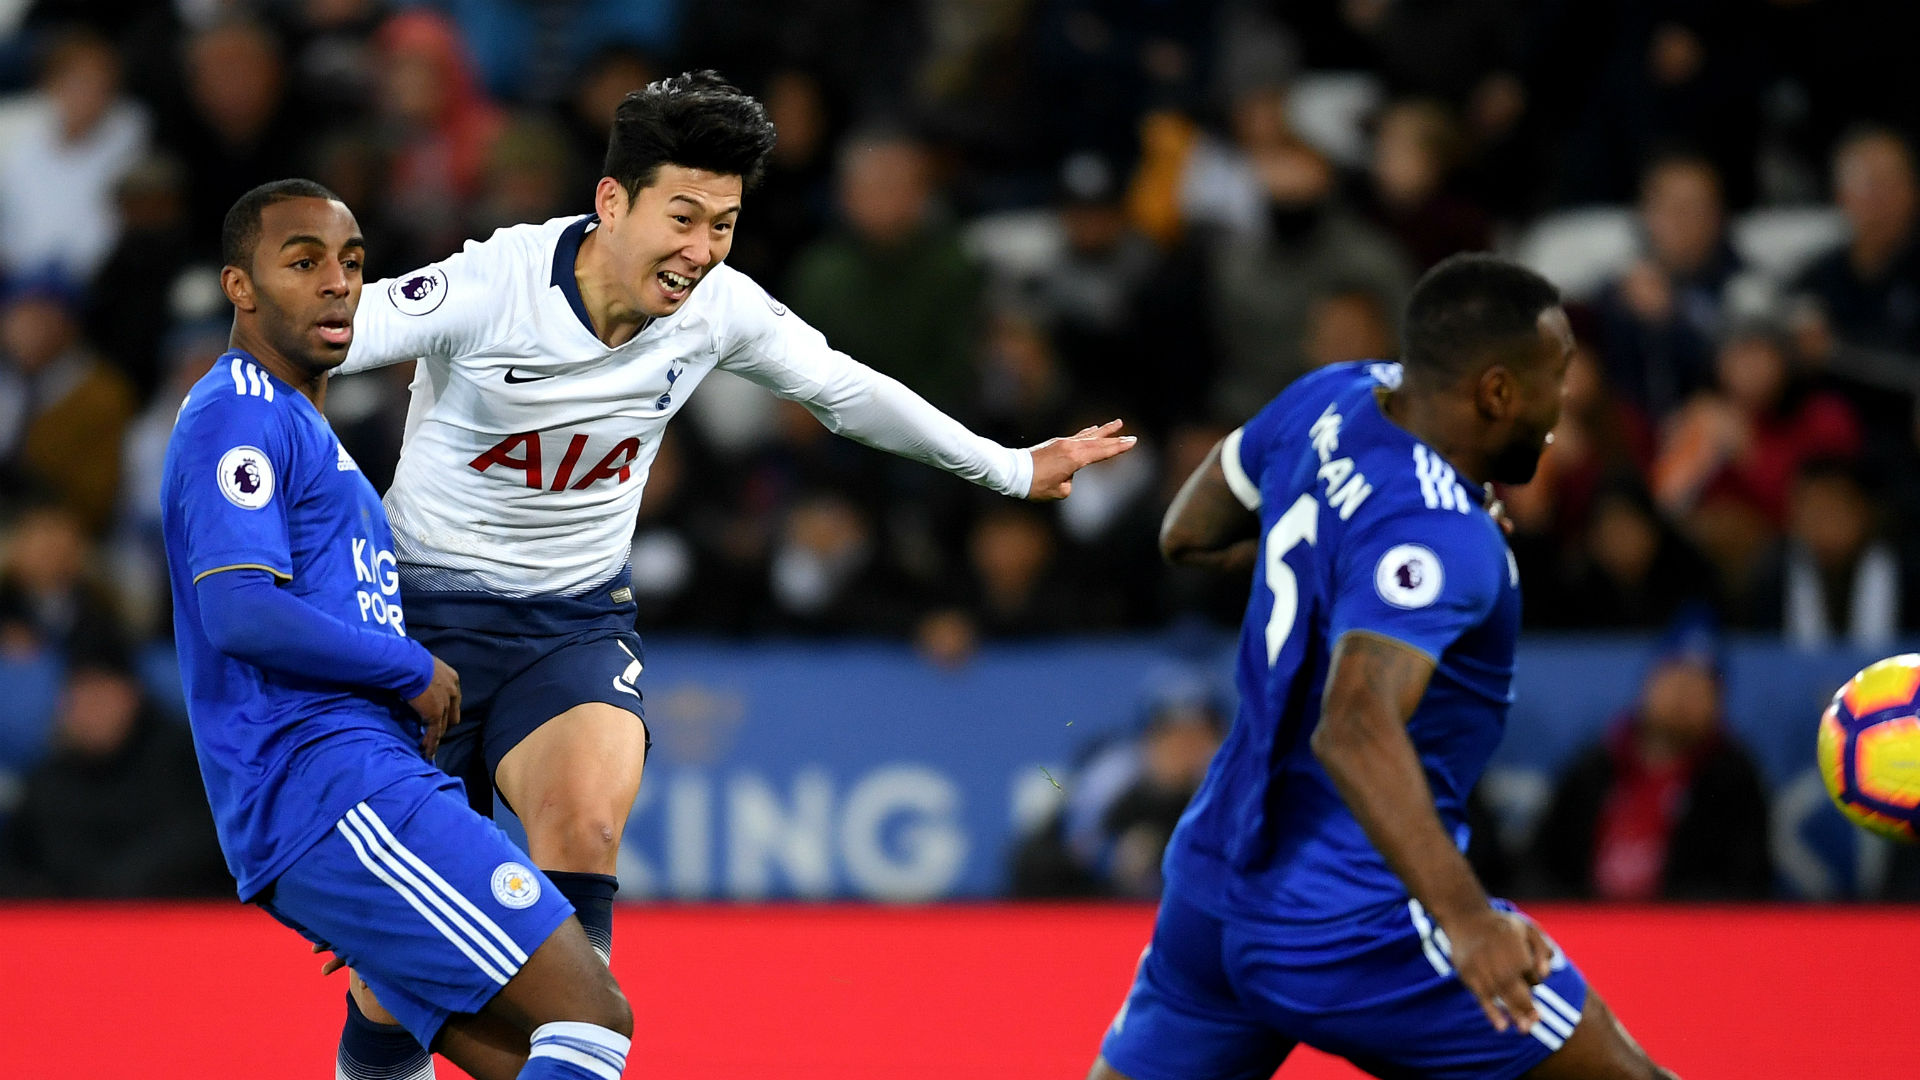 Leicester City 0 Tottenham 2: Latest Son stunner buoys Spurs for Barca mission